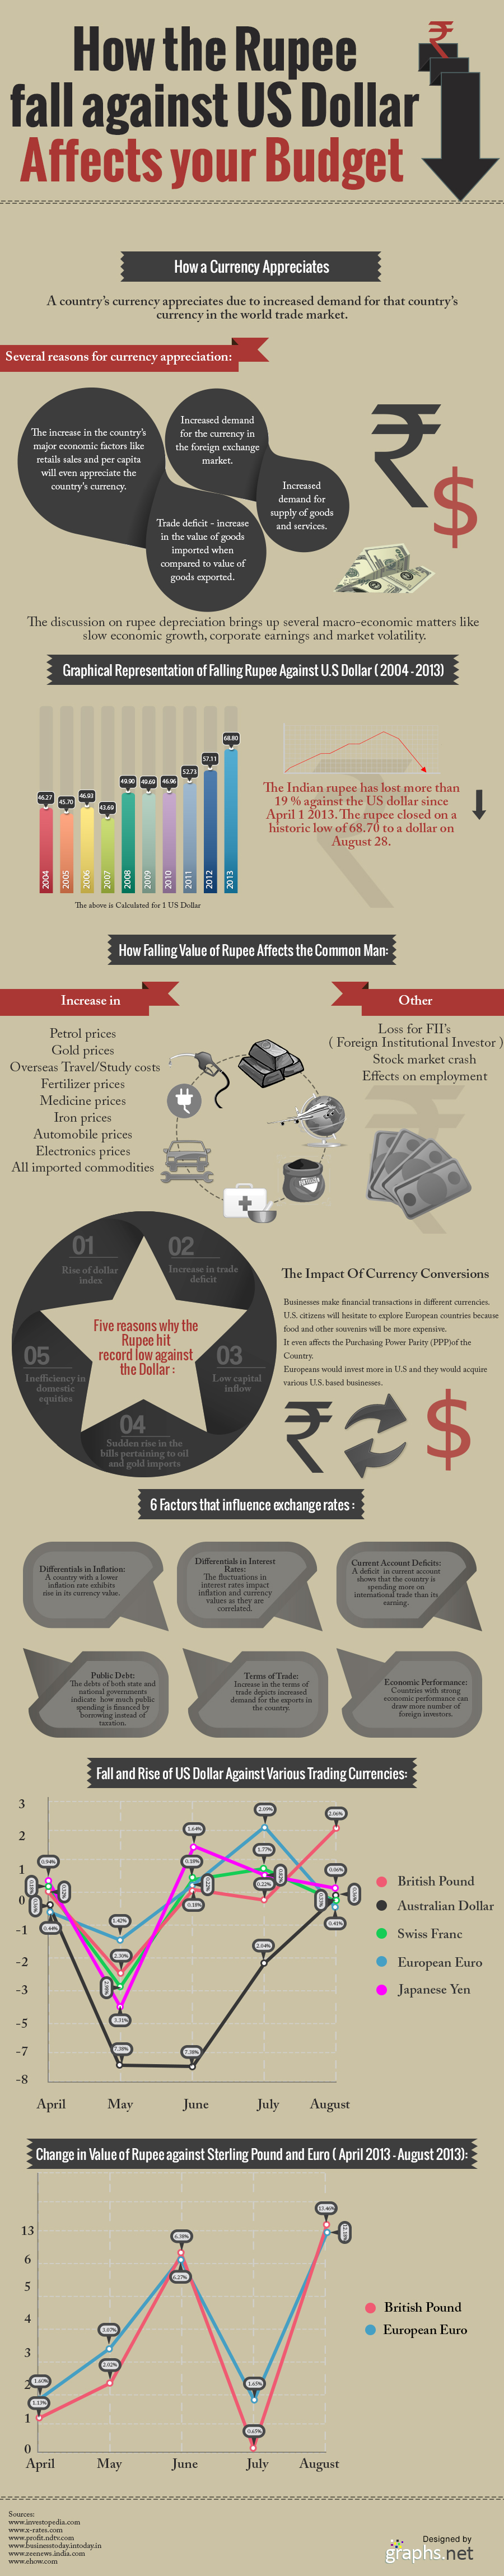 How the Rupee fall against US dollar affects your budget